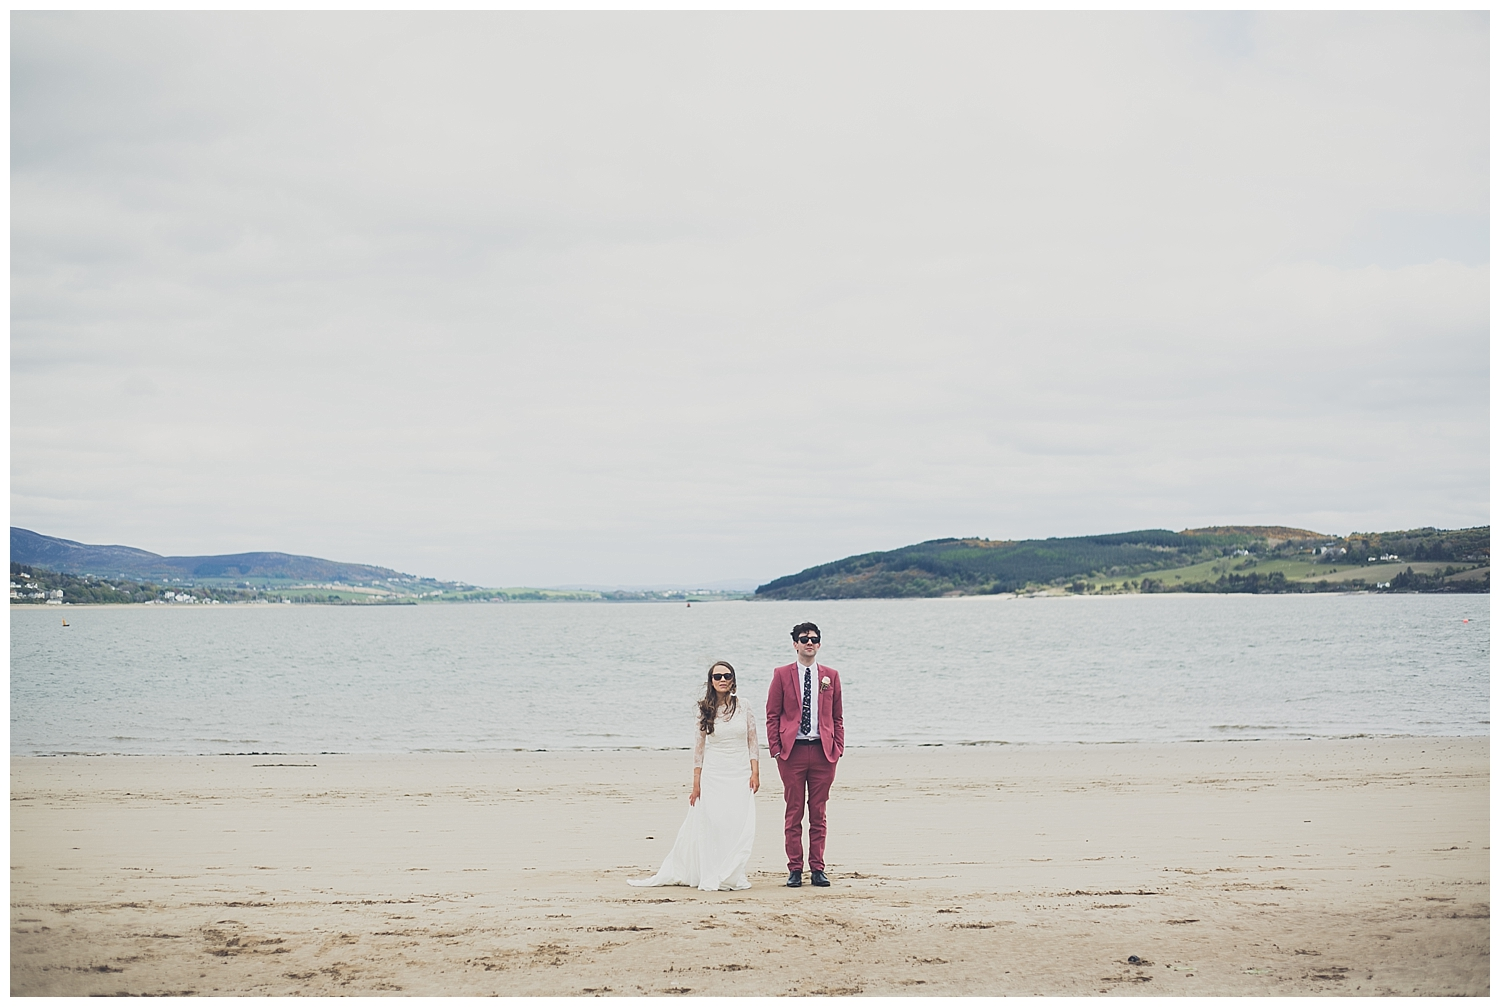 Wild Things Wed Photography - Ireland, Northern Ireland & Destination Wedding Photographer